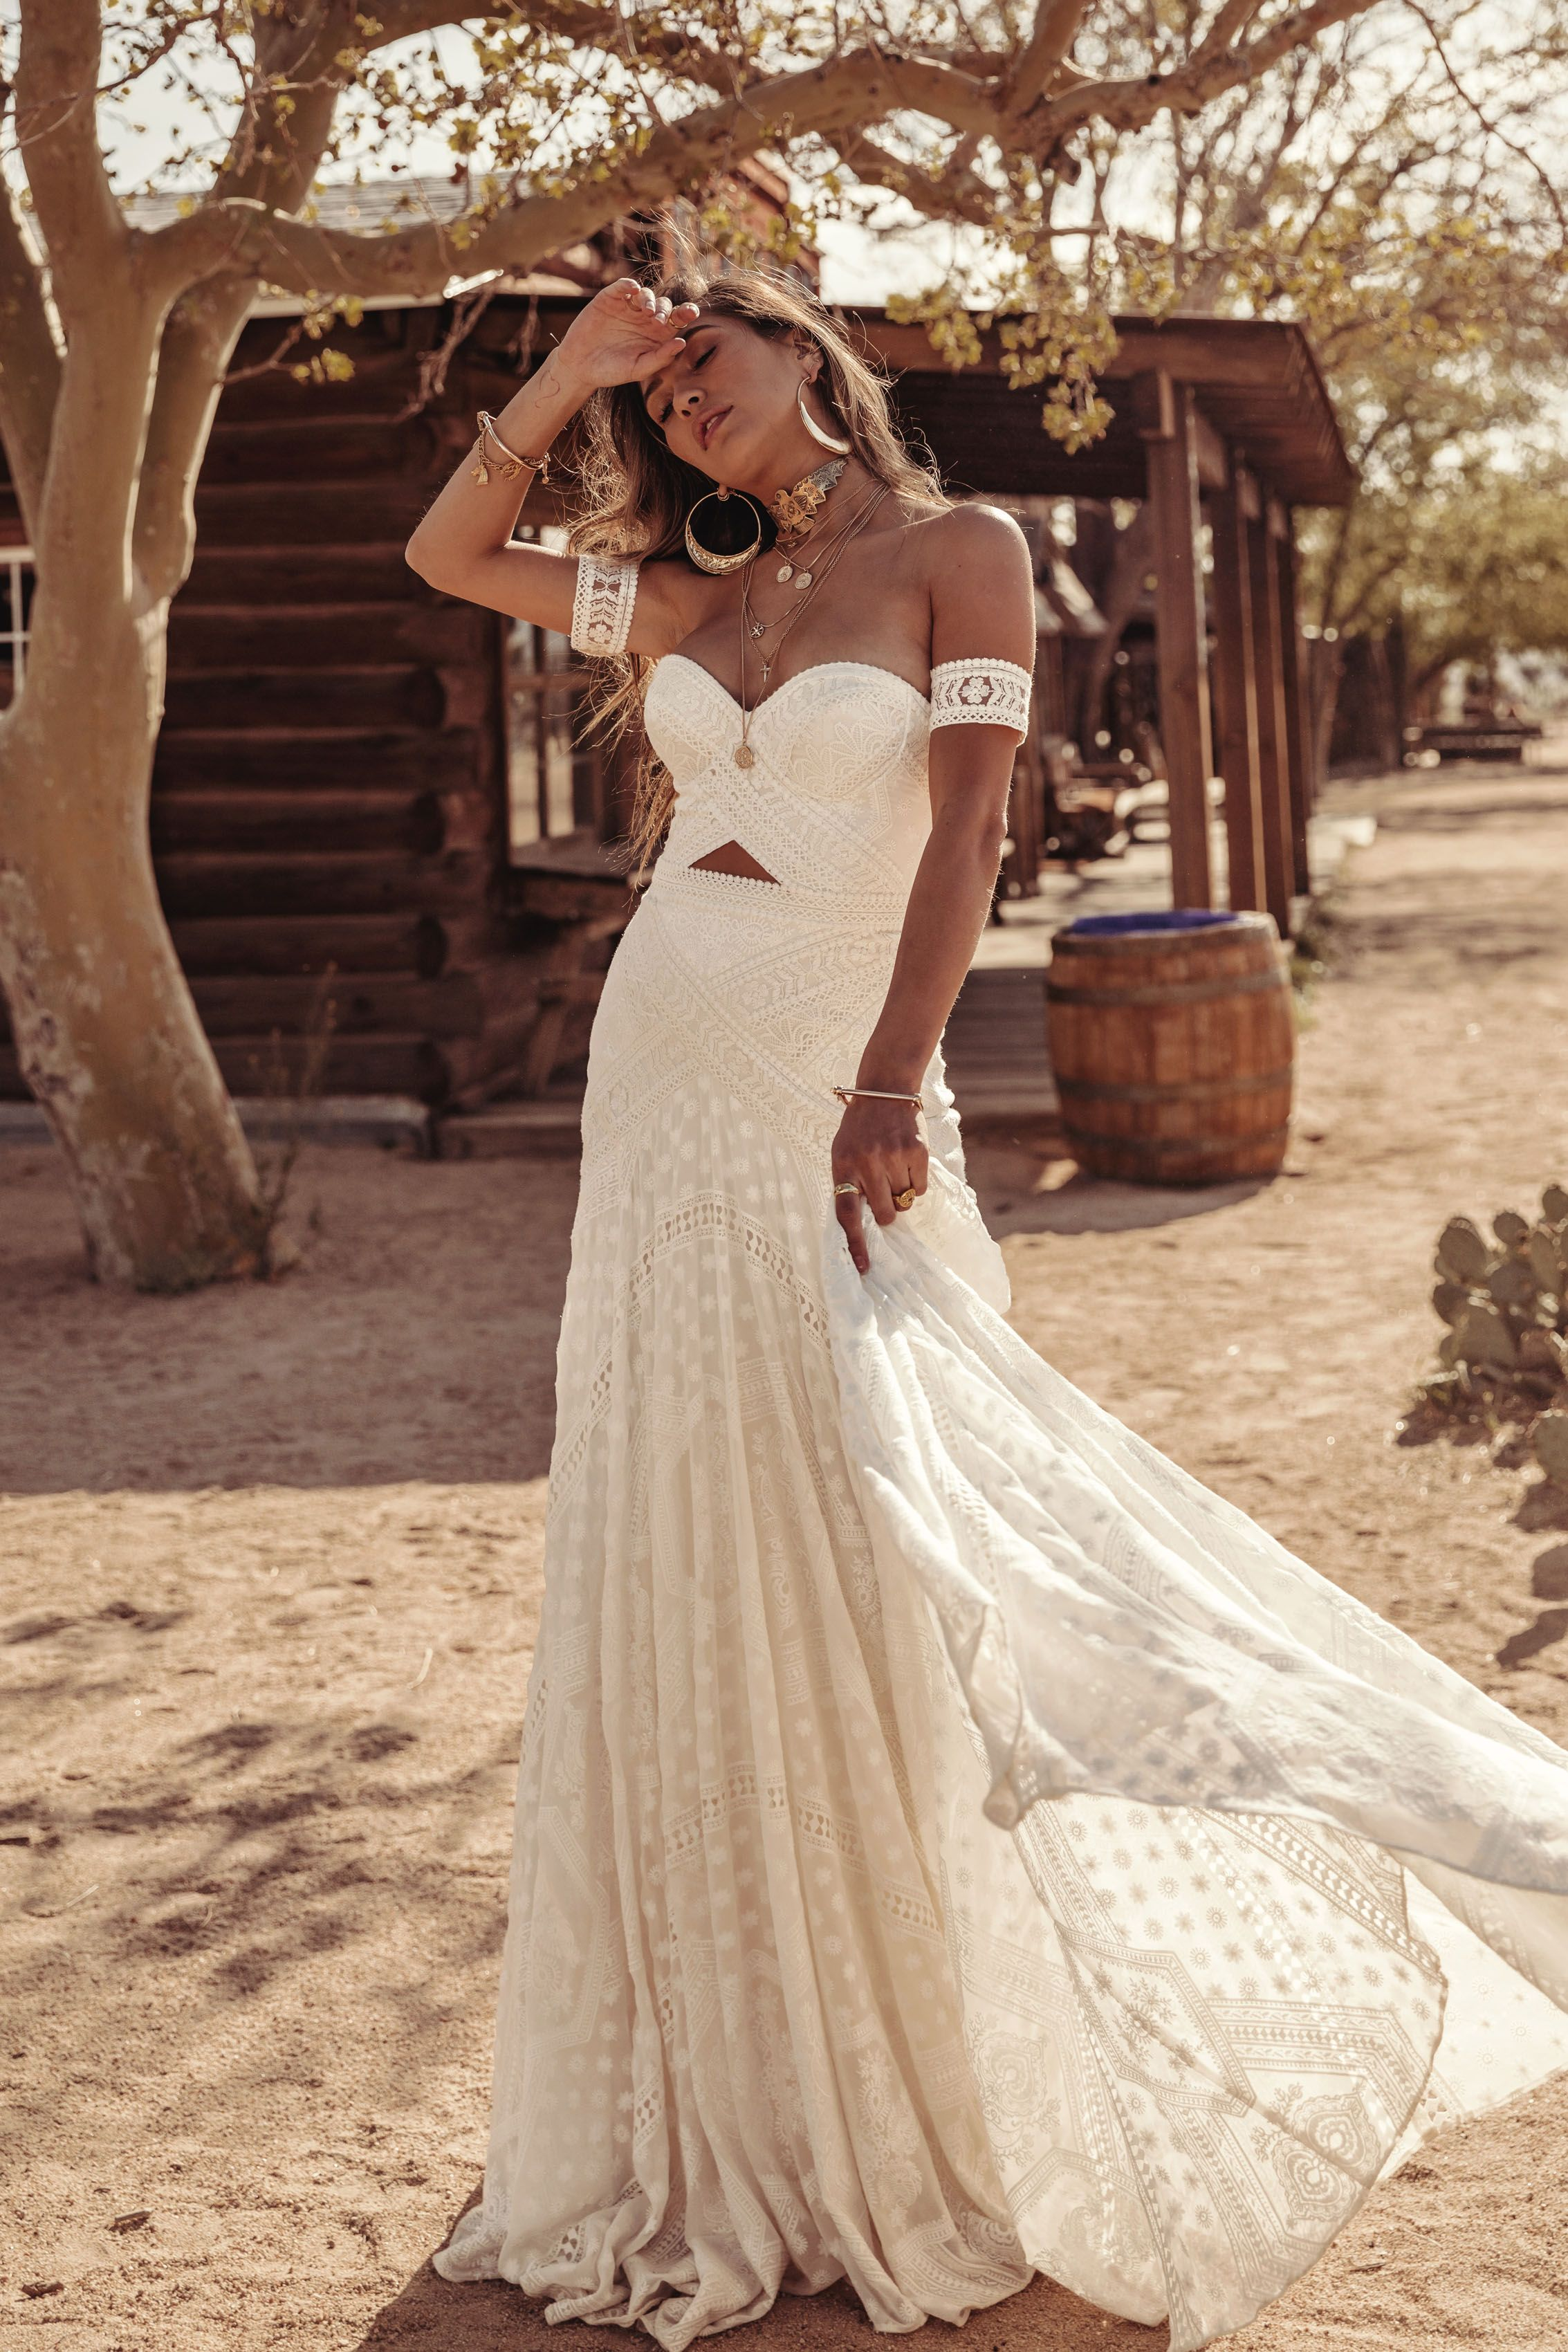 Knoxville Gown By Rue De Seine Moonrise Canyon Collection 2019 Bridal Gown Bohemian Wedding Dress Bustier Wedding Bustier